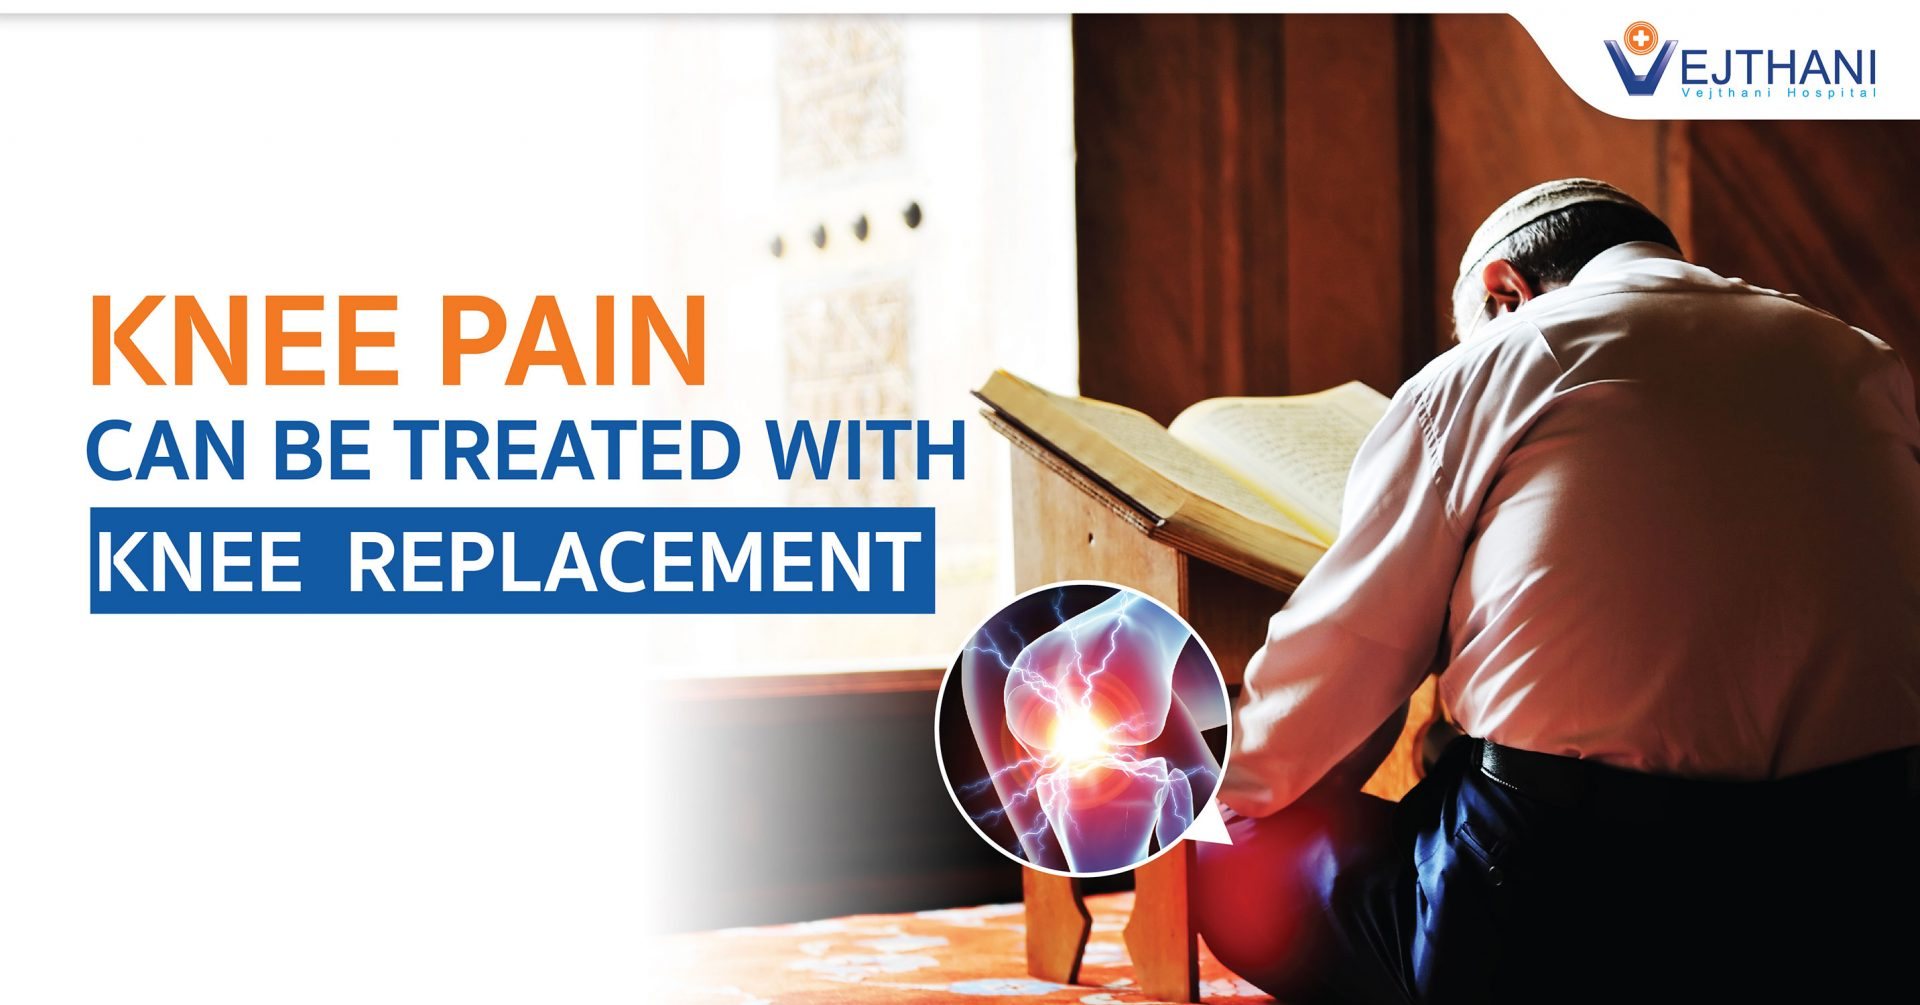 total knee replacement in Thailand